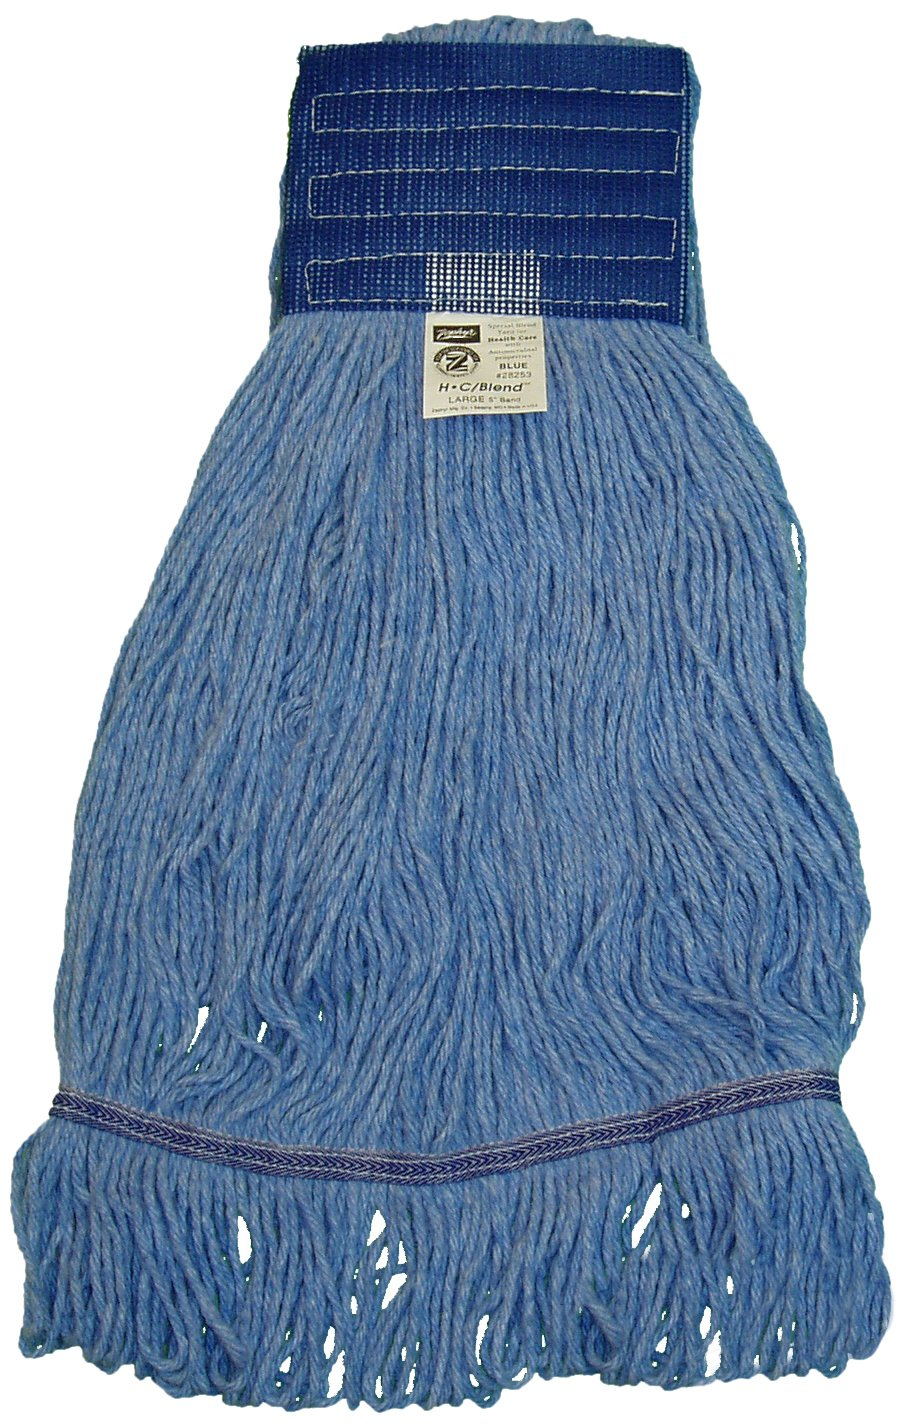 Zephyr 28253 HC/Blend Blue 4-Ply Yarn Large Health Care Loop Mop Head with 5'' Mesh Wide Band (Pack of 12)